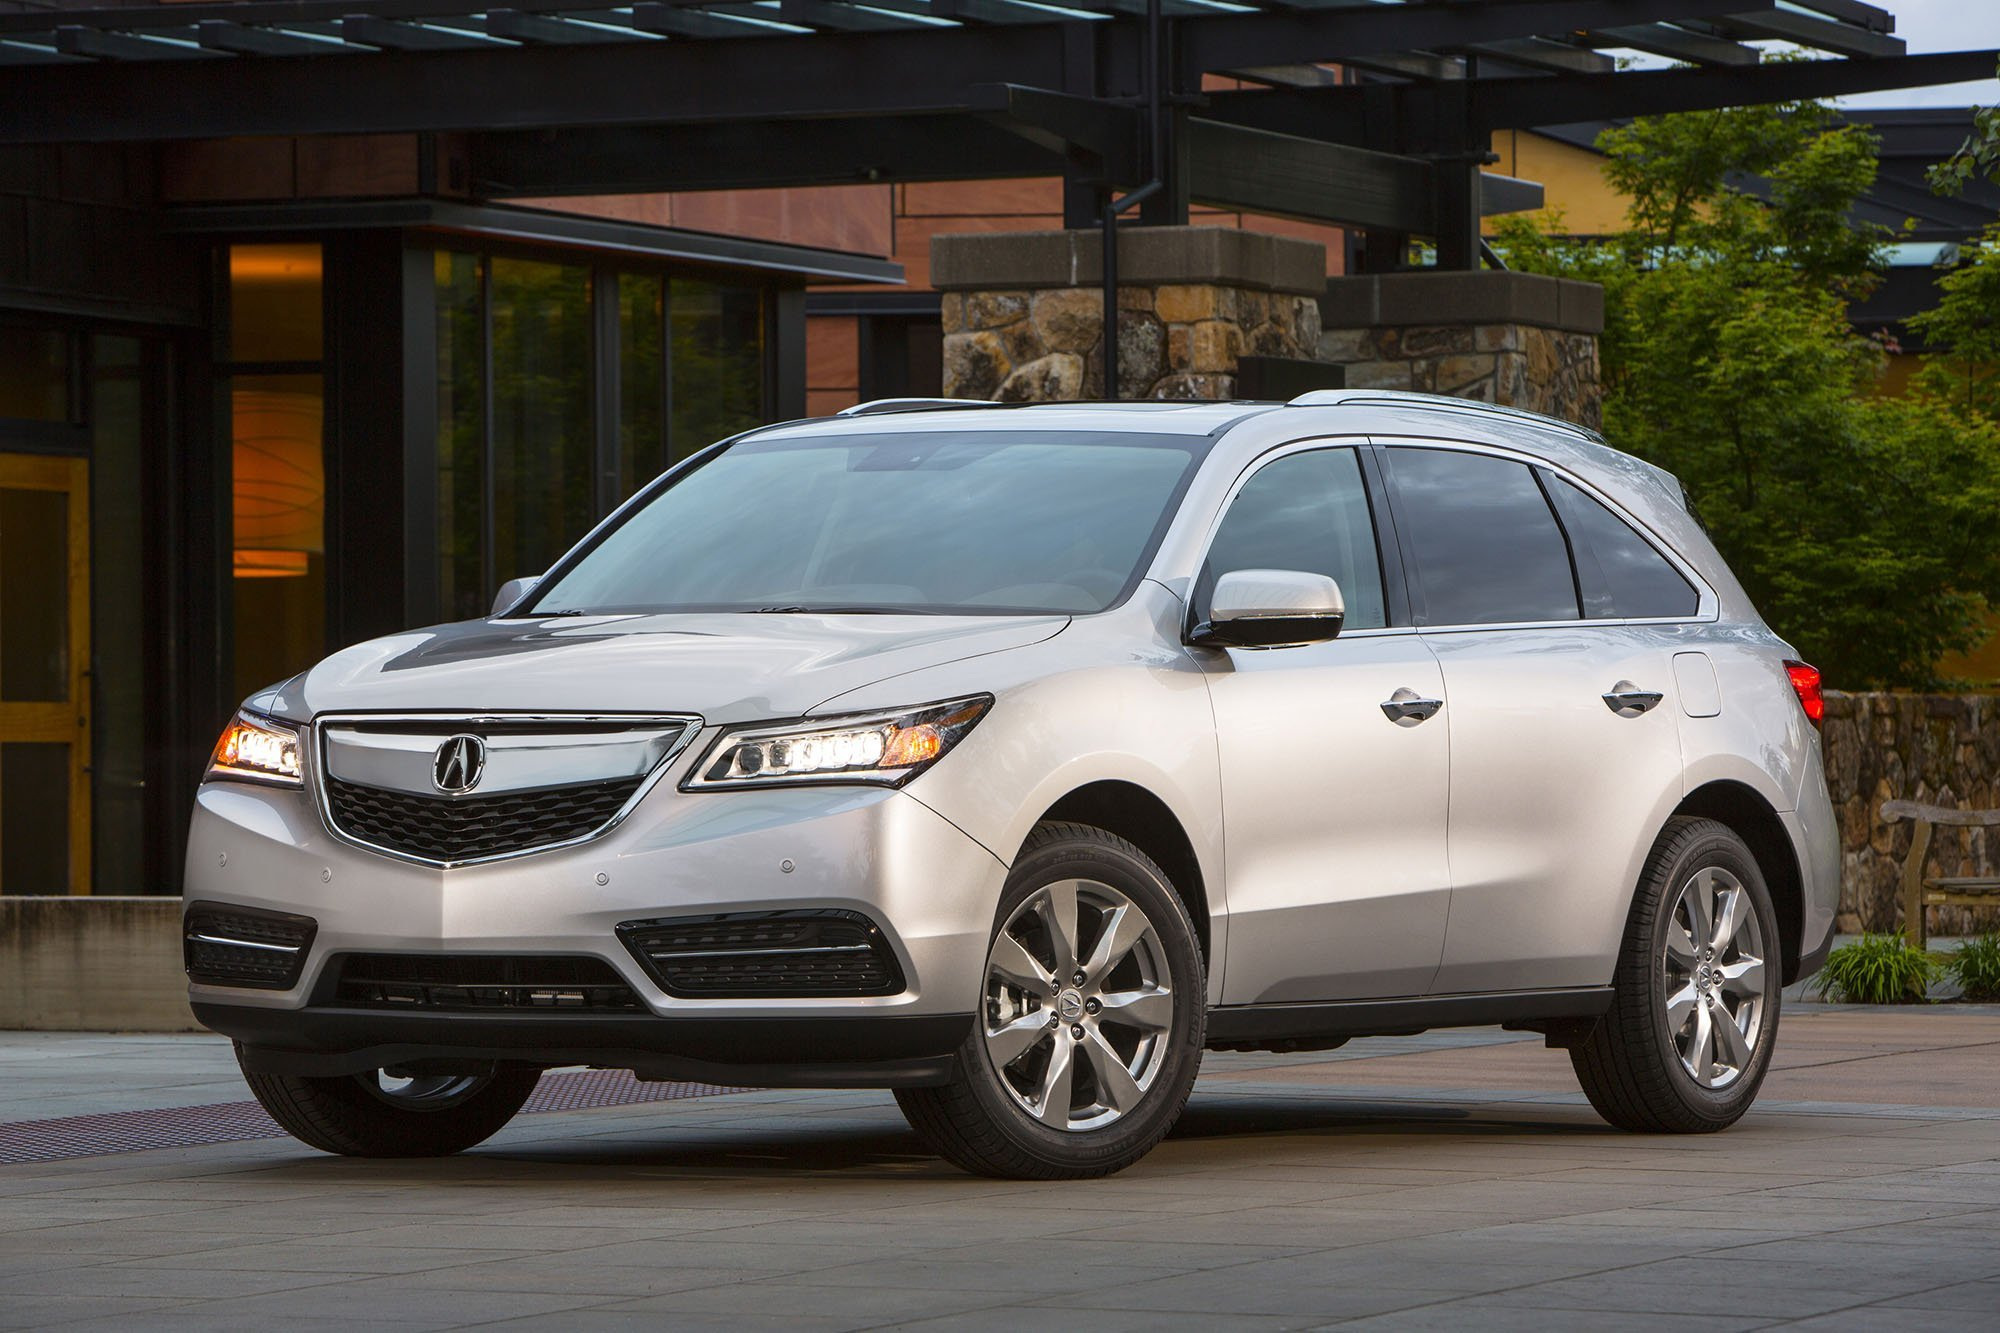 ACURA CANADA - Acura MDX chosen as 'Best New SUV over $60,000'